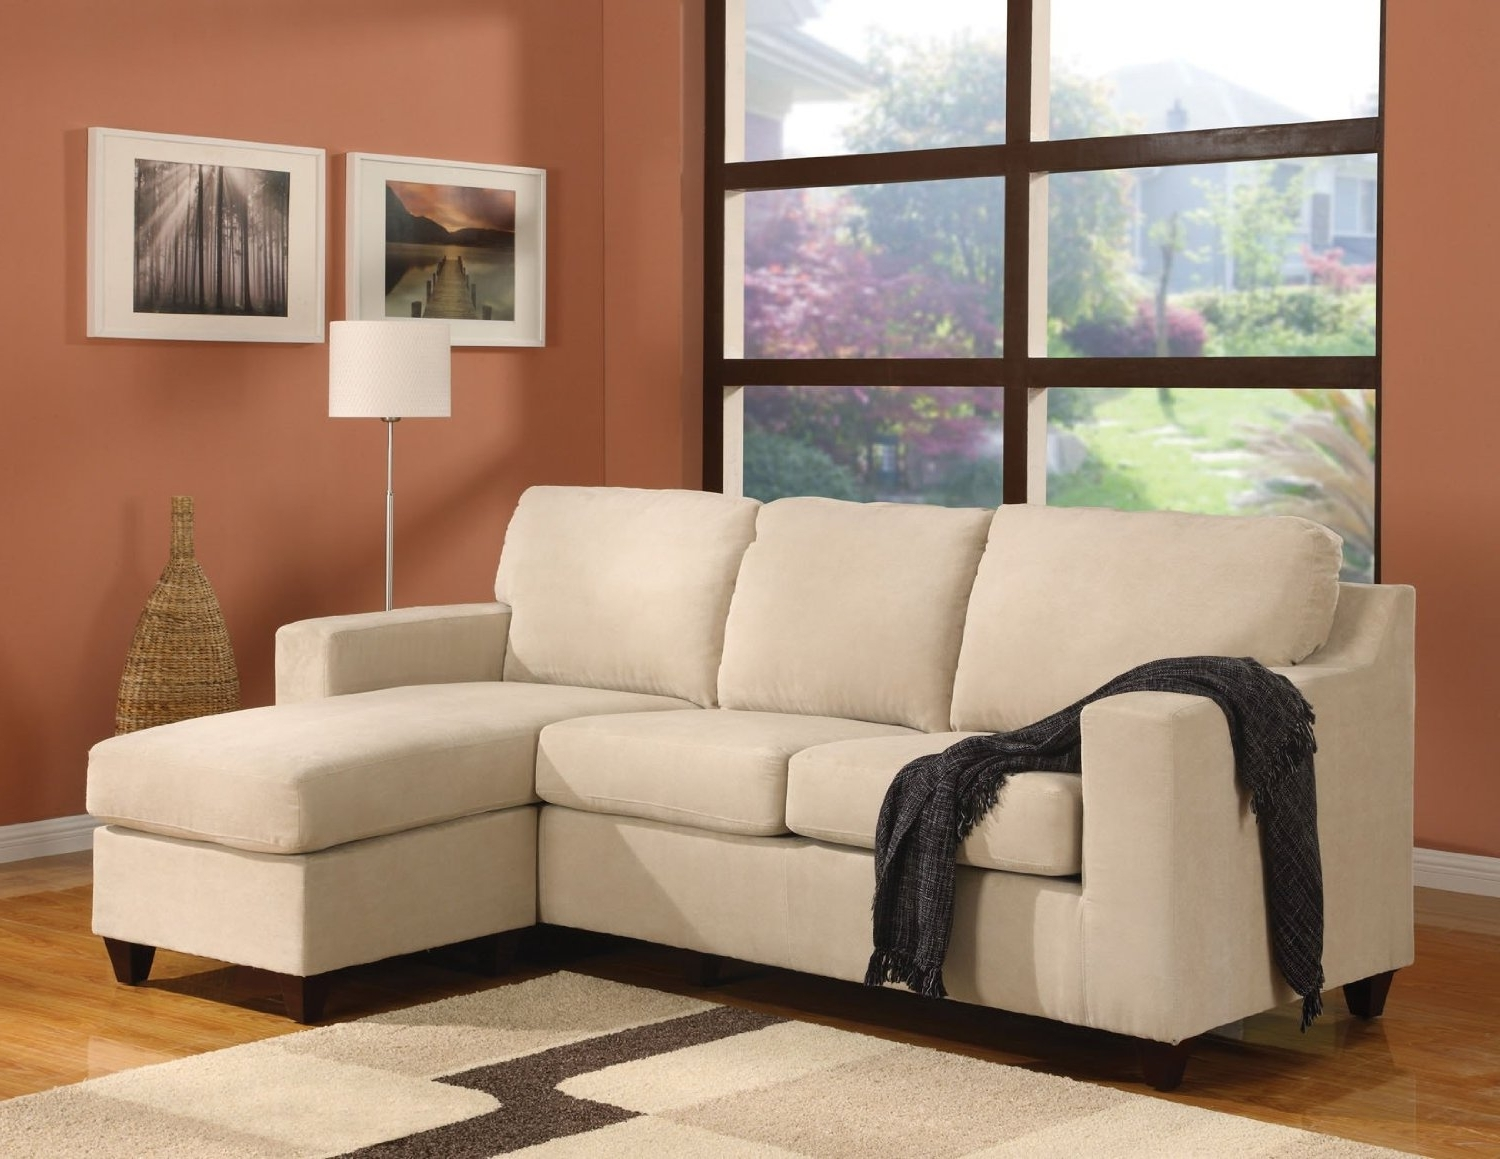 Couches With Chaise Lounge With Regard To Trendy Awesome Small Sectional Sofa With Chaise Lounge Chairs (View 7 of 15)